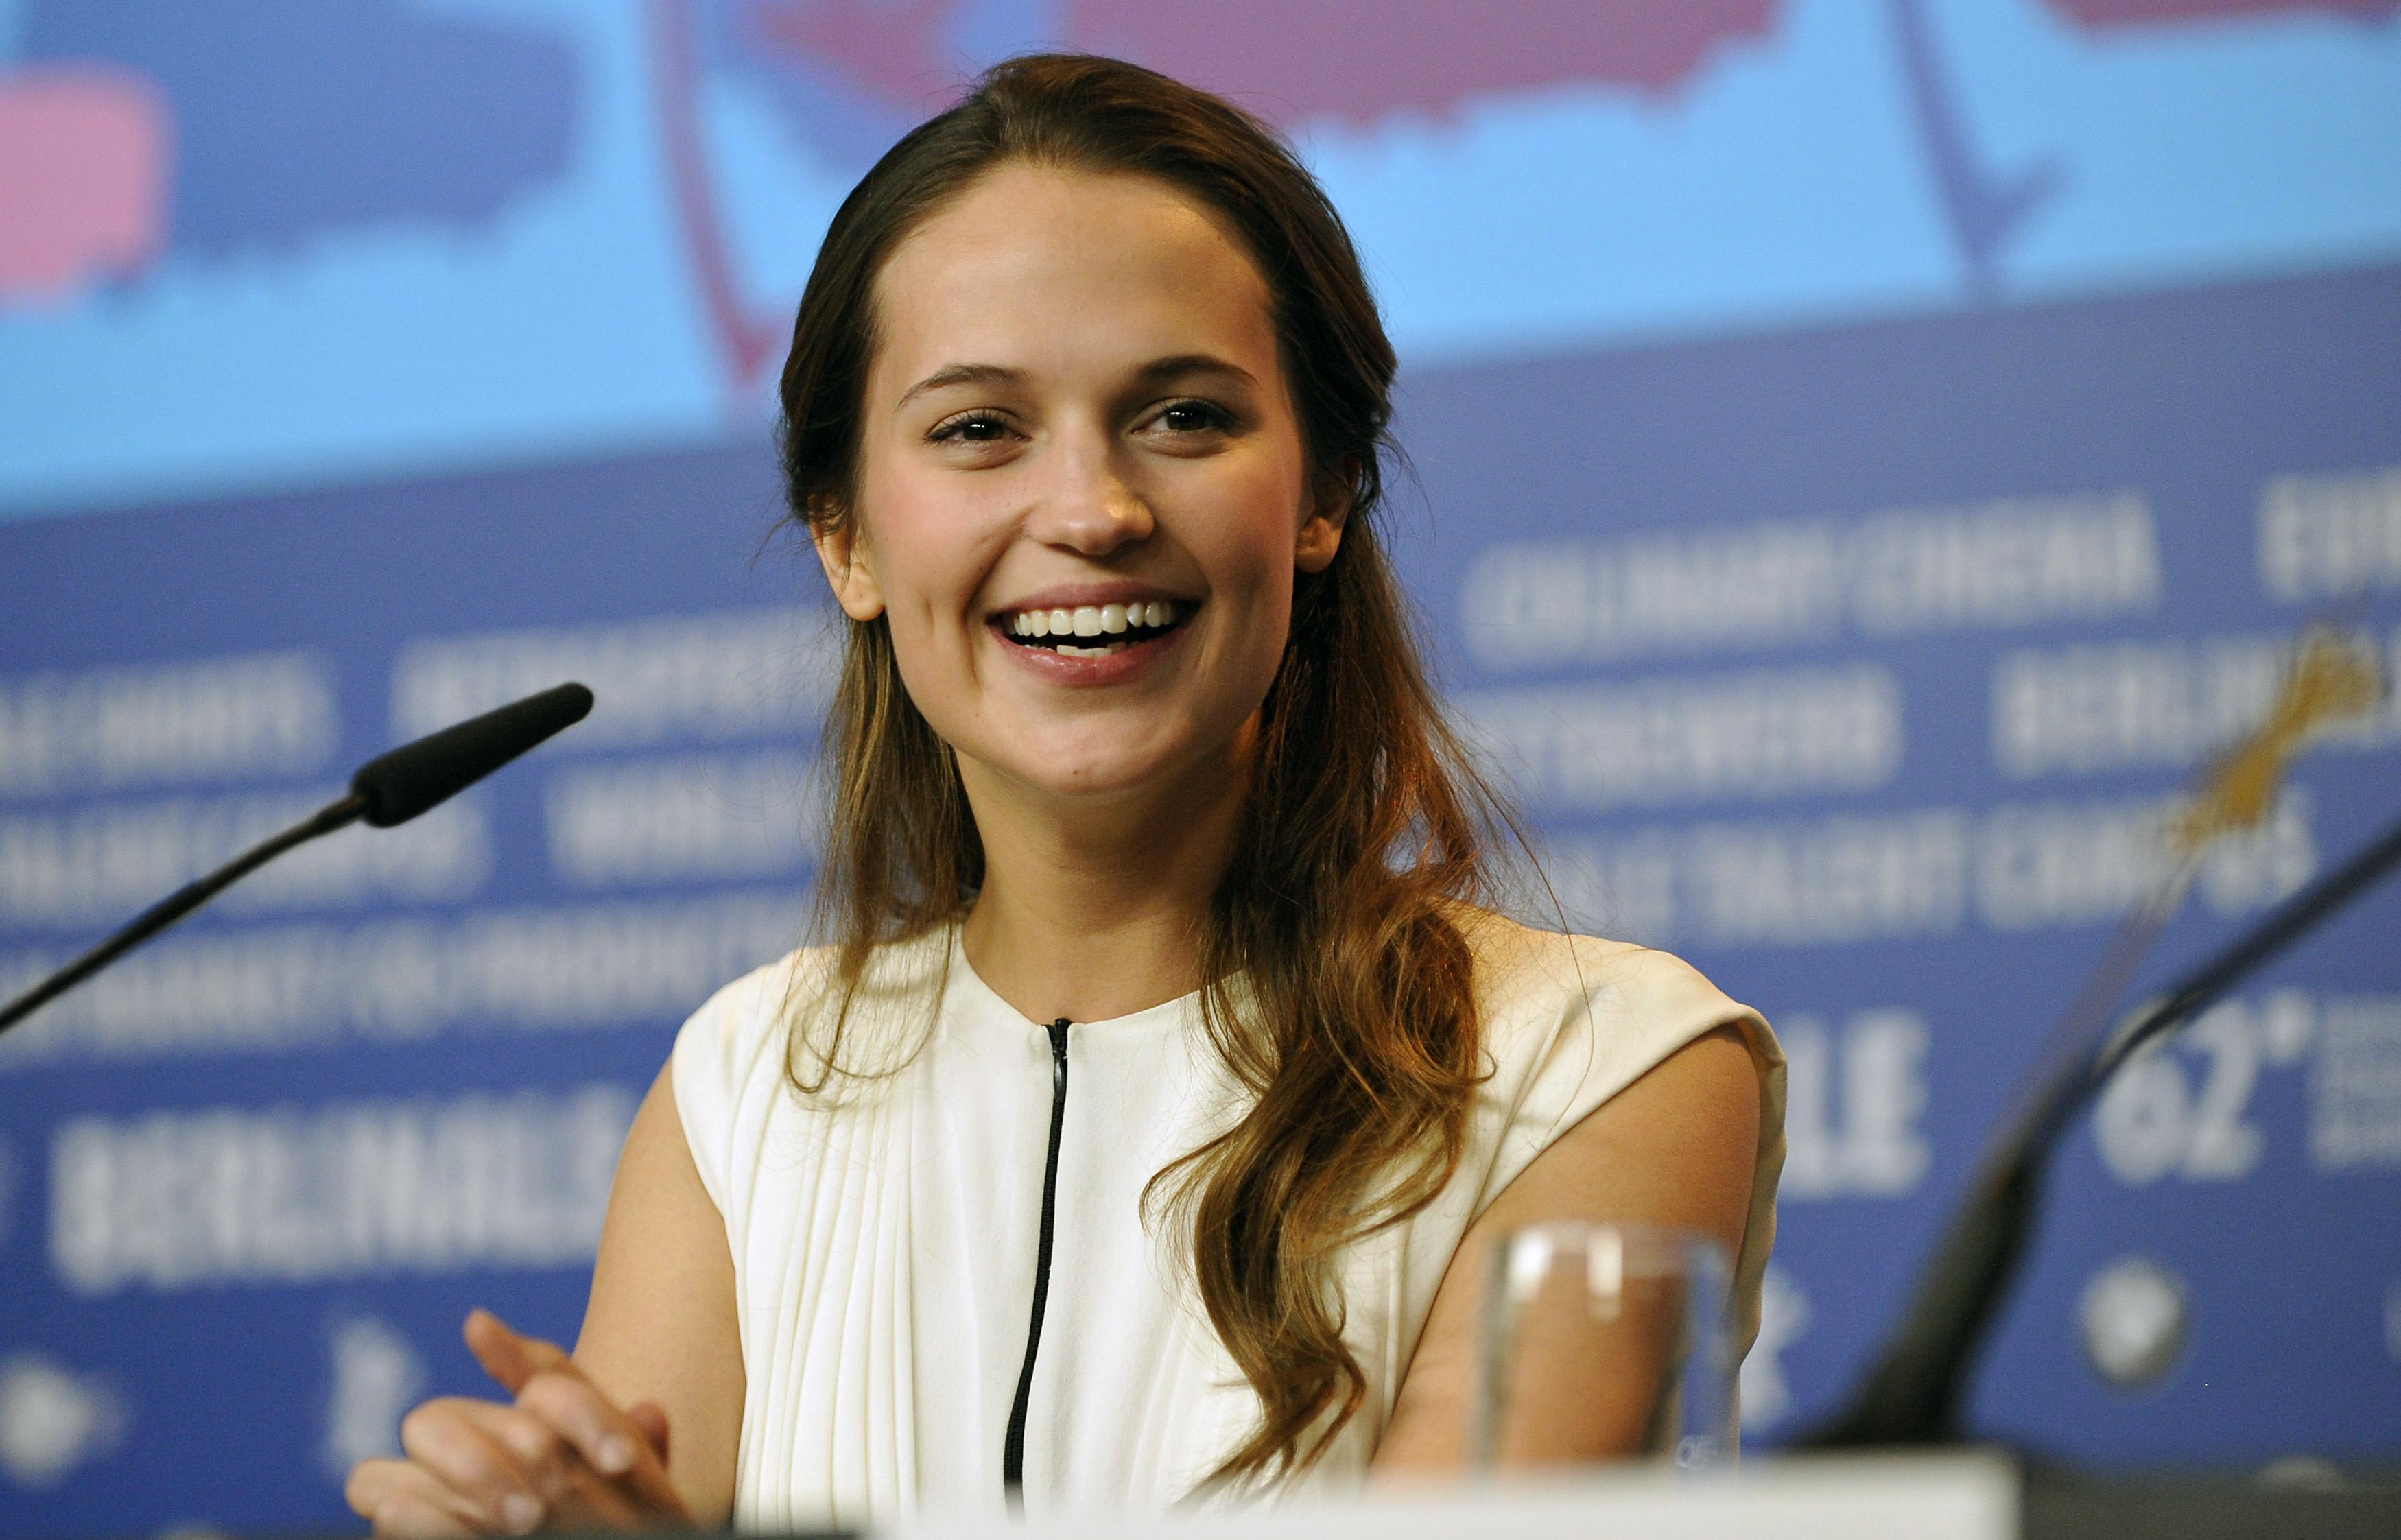 Who Is Alicia Vikander?